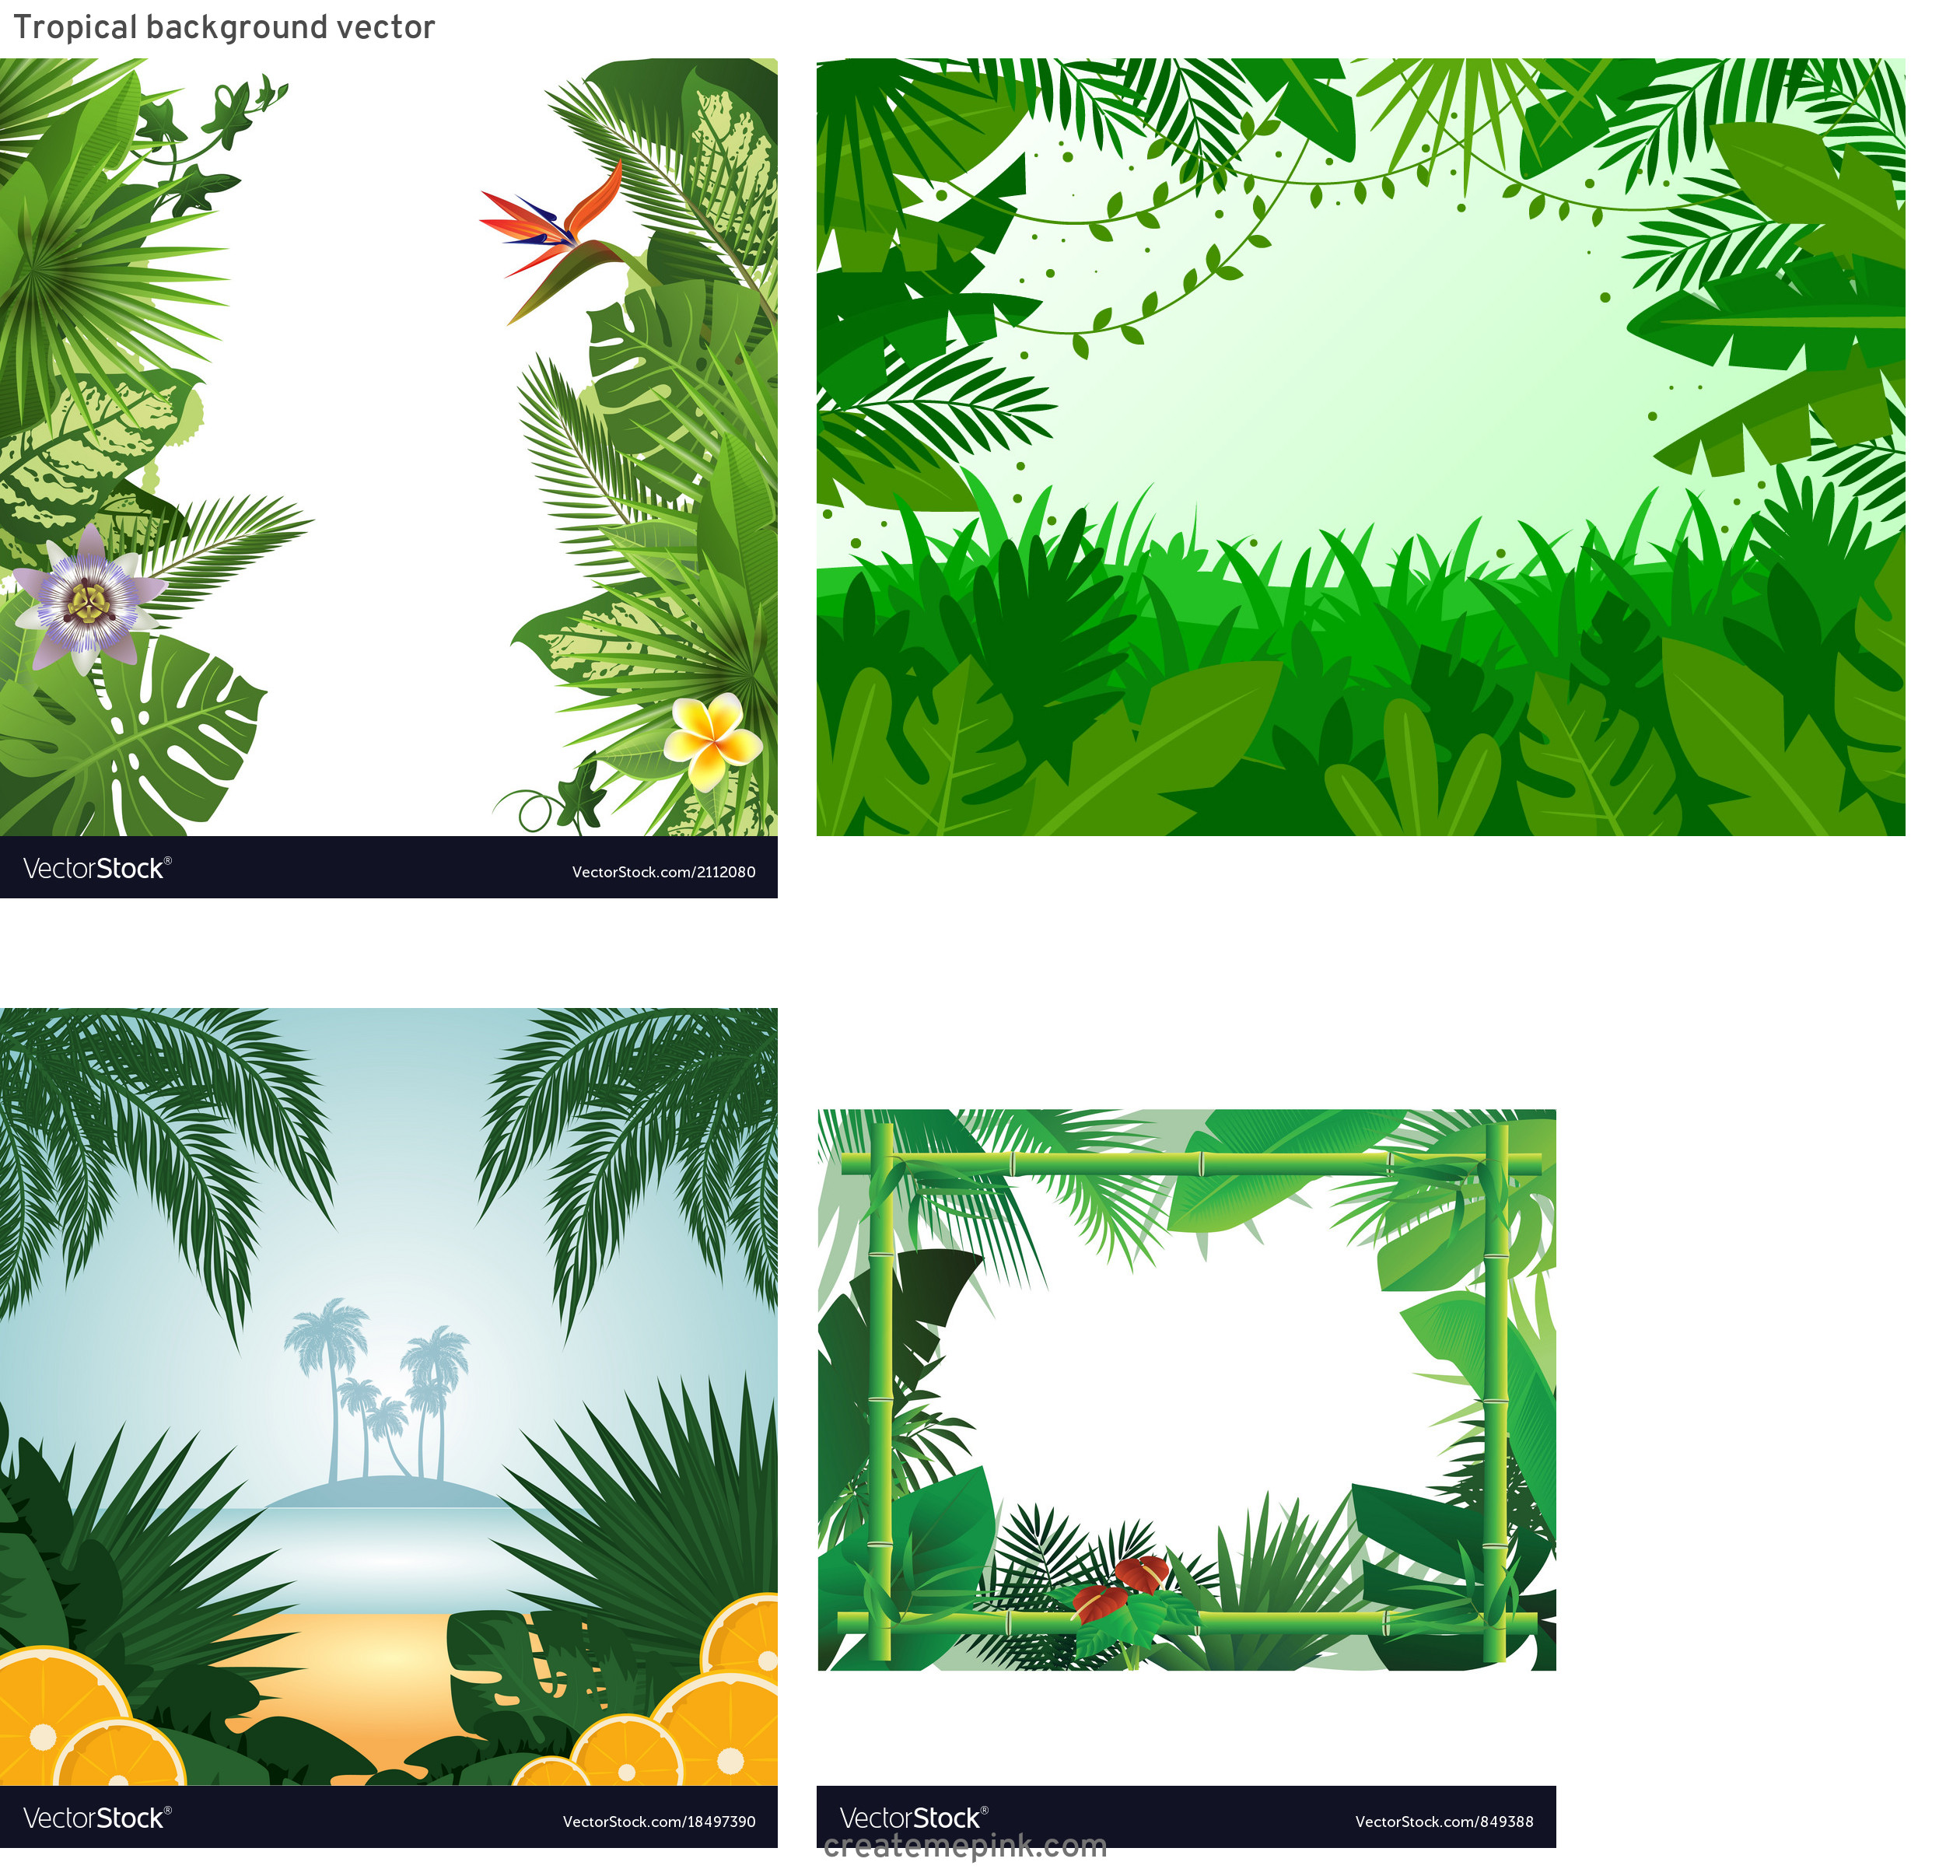 Tropical Background Vector: Tropical Background Vector